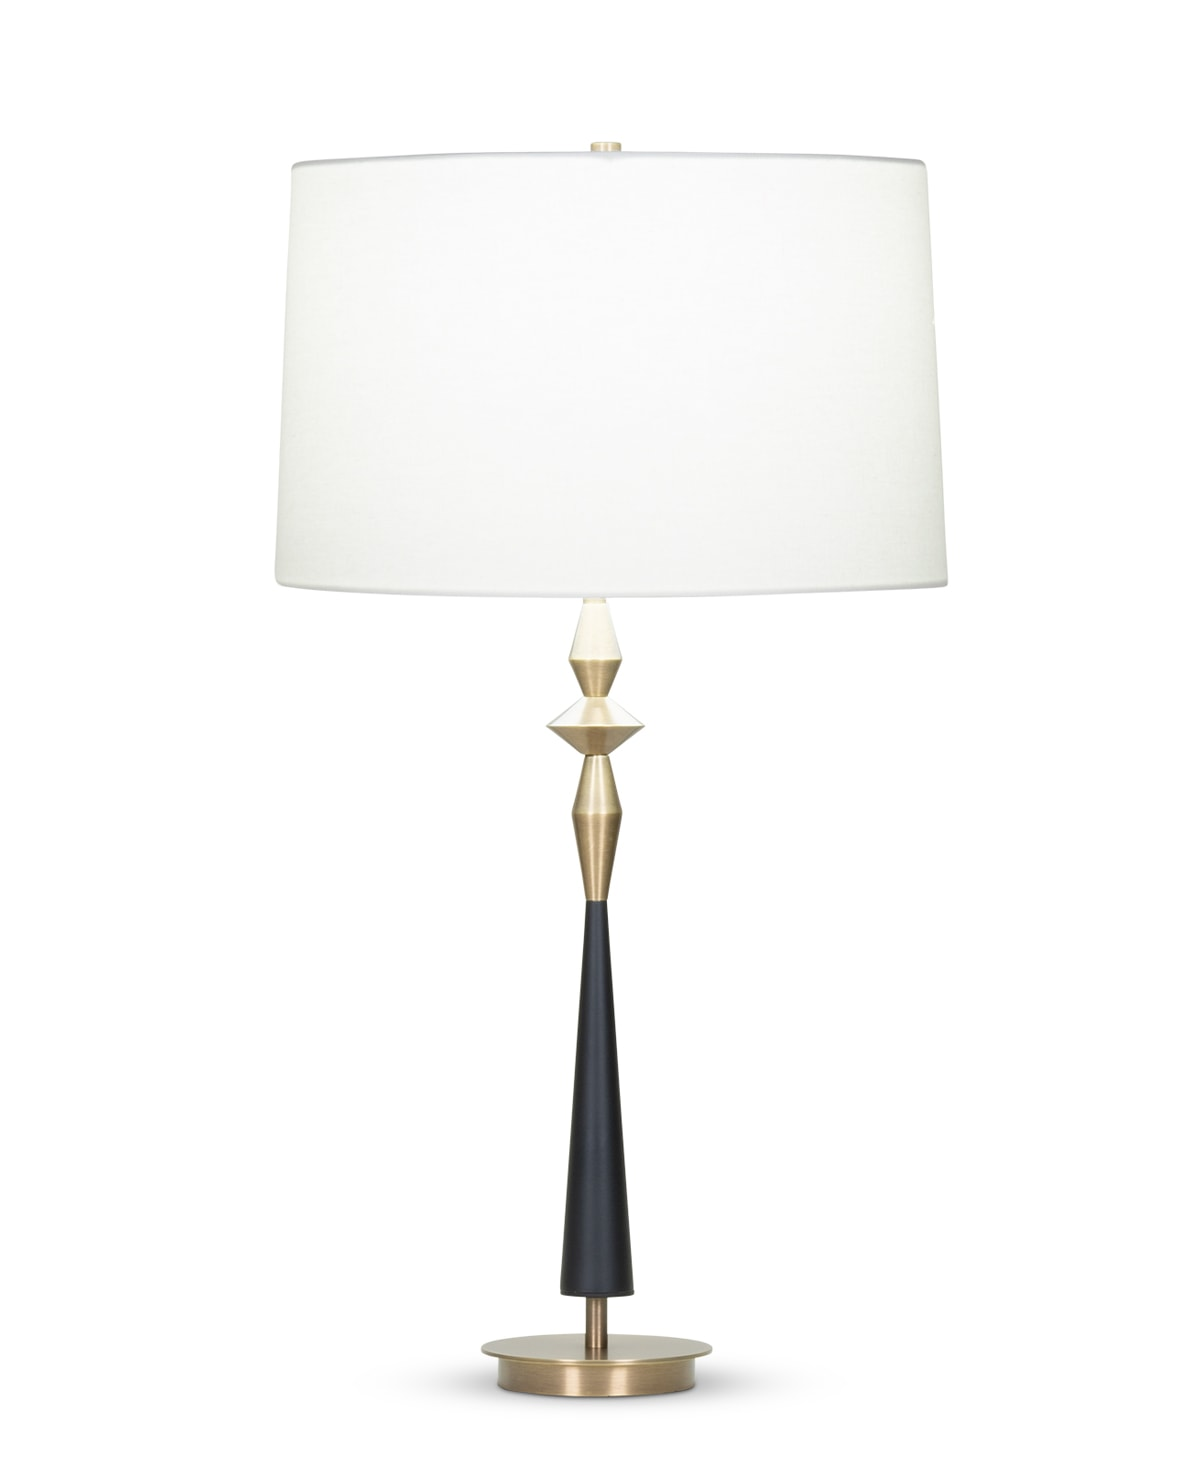 FlowDecor Morrison Table Lamp in metal with antique brass & black matte finishes and off-white linen tapered drum shade (# 4082)